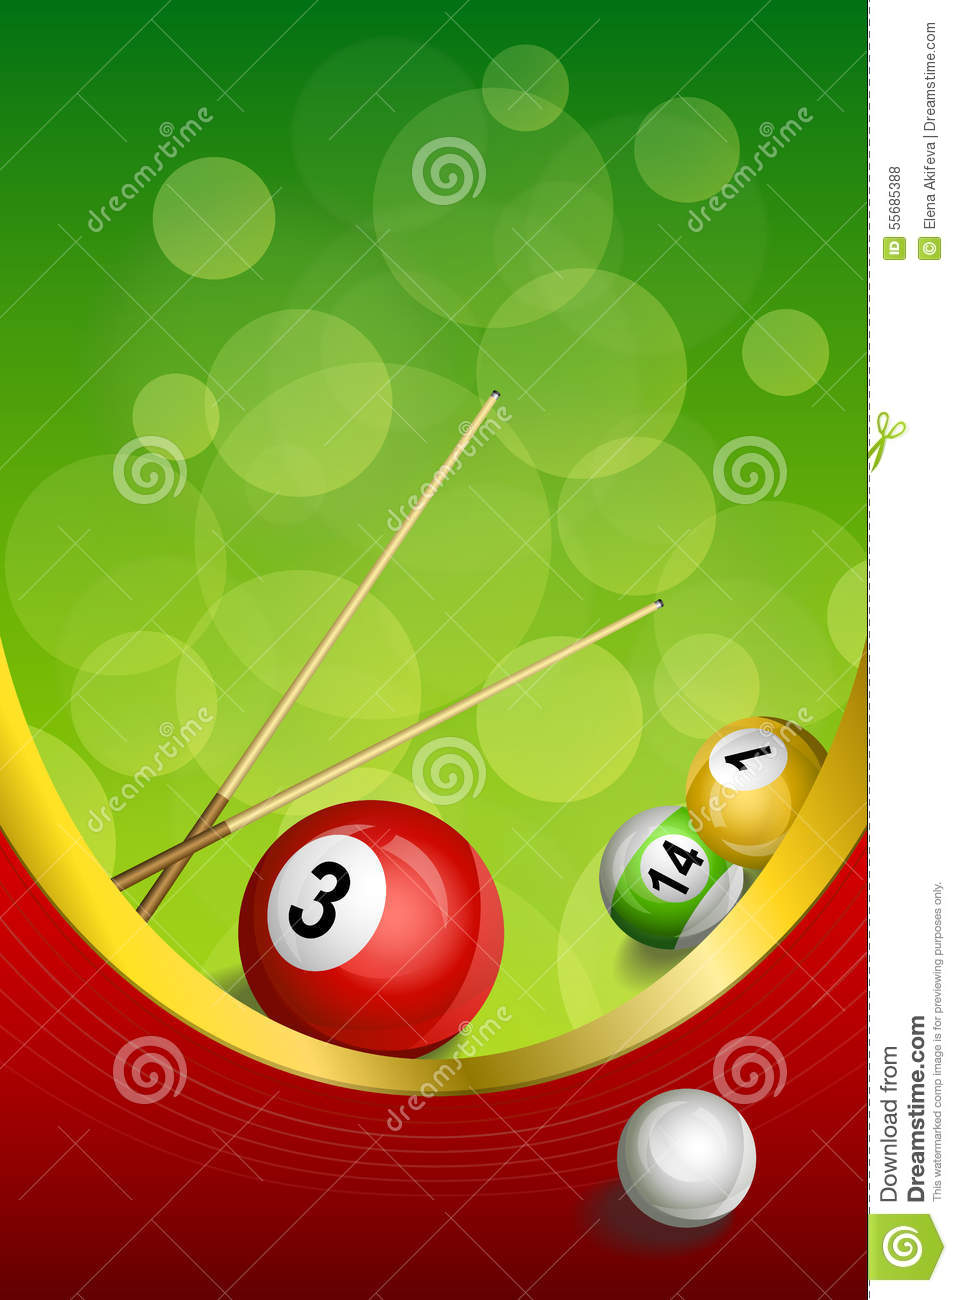 Background Abstract Green Billiards Pool Cue Red Ball